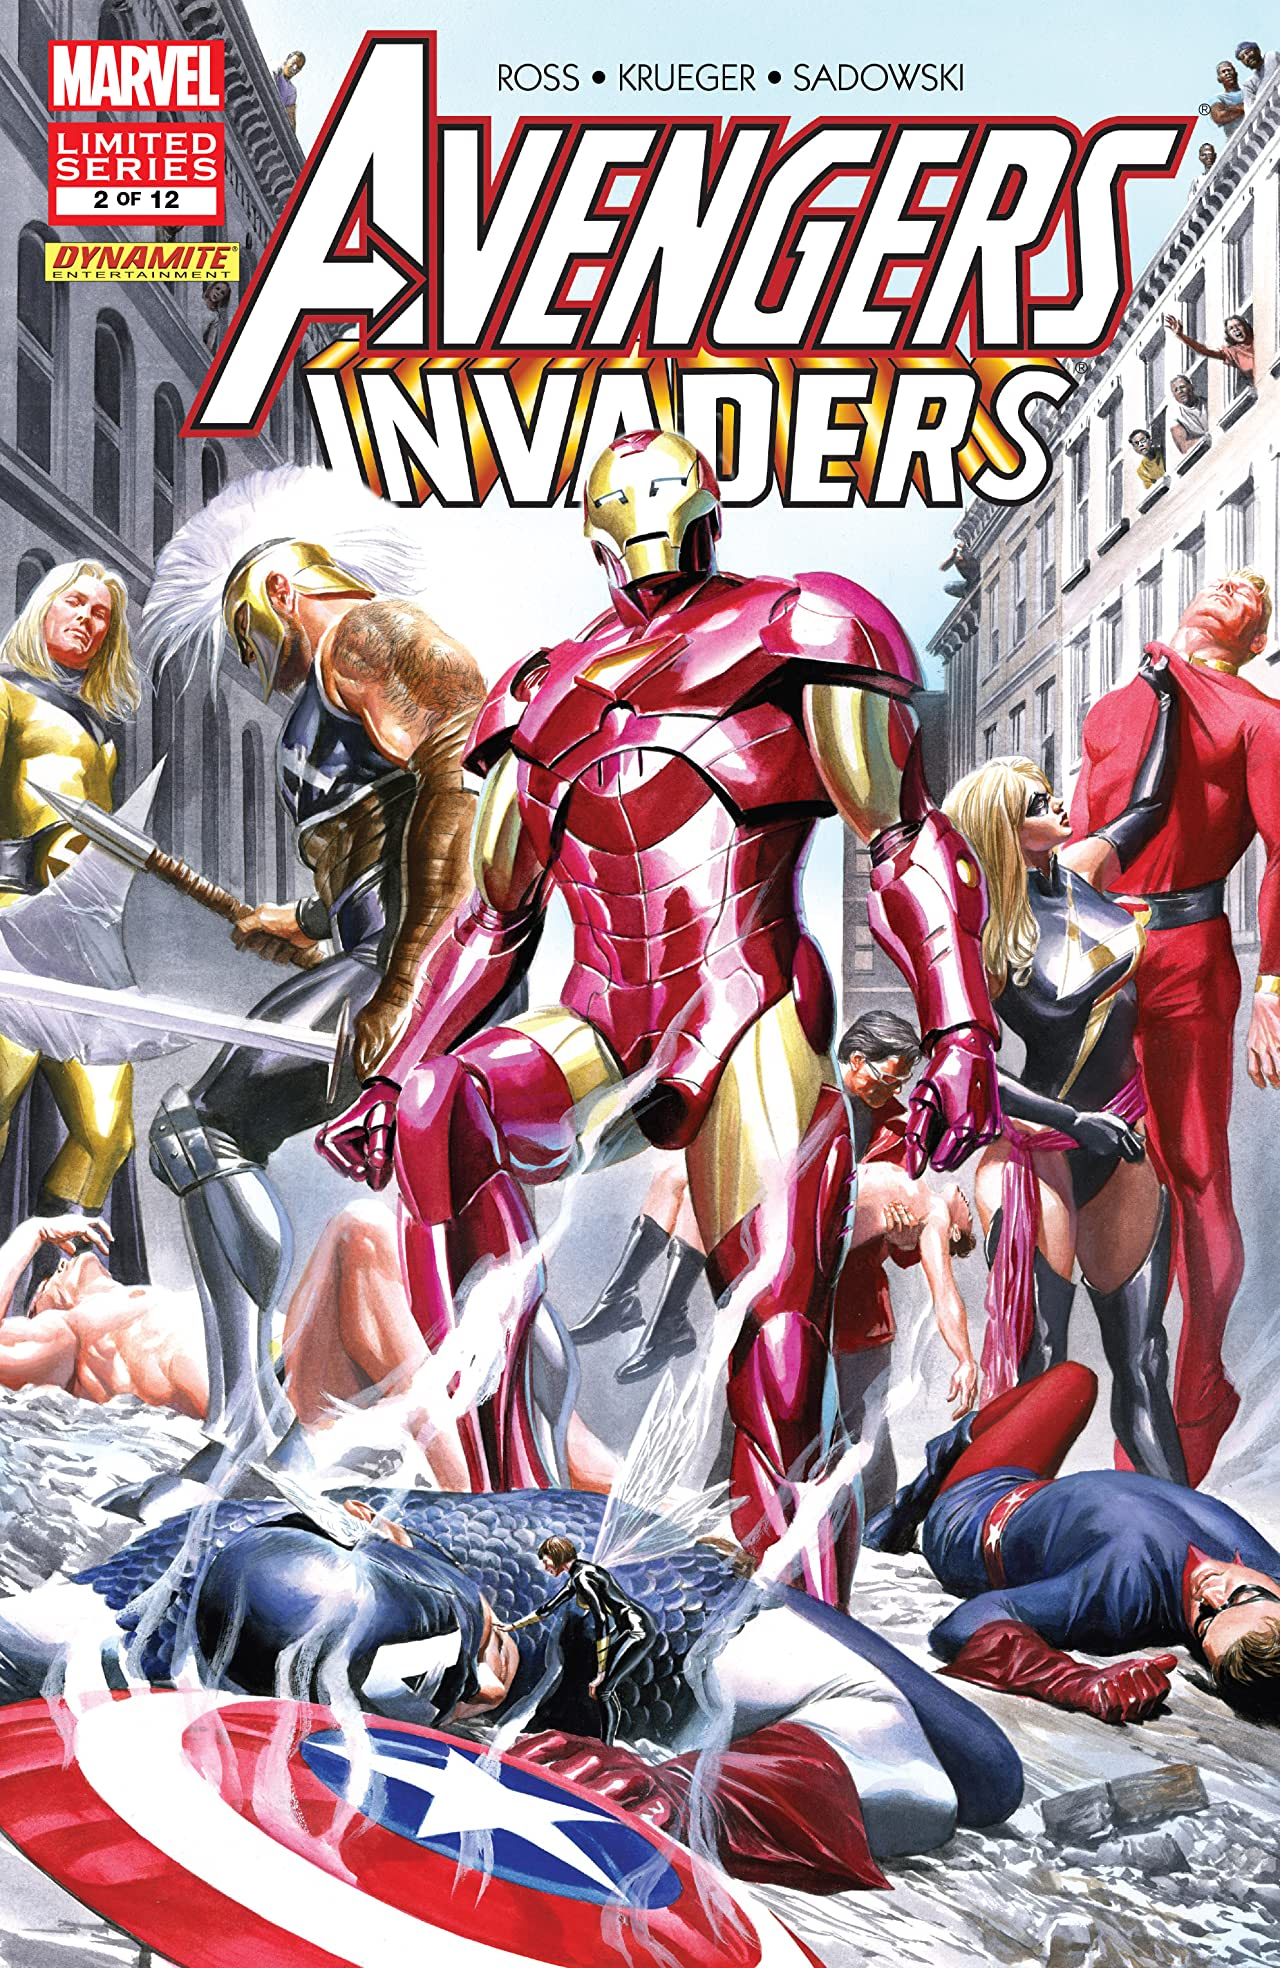 Avengers/Invaders (2008-2009) #2 (of 12)